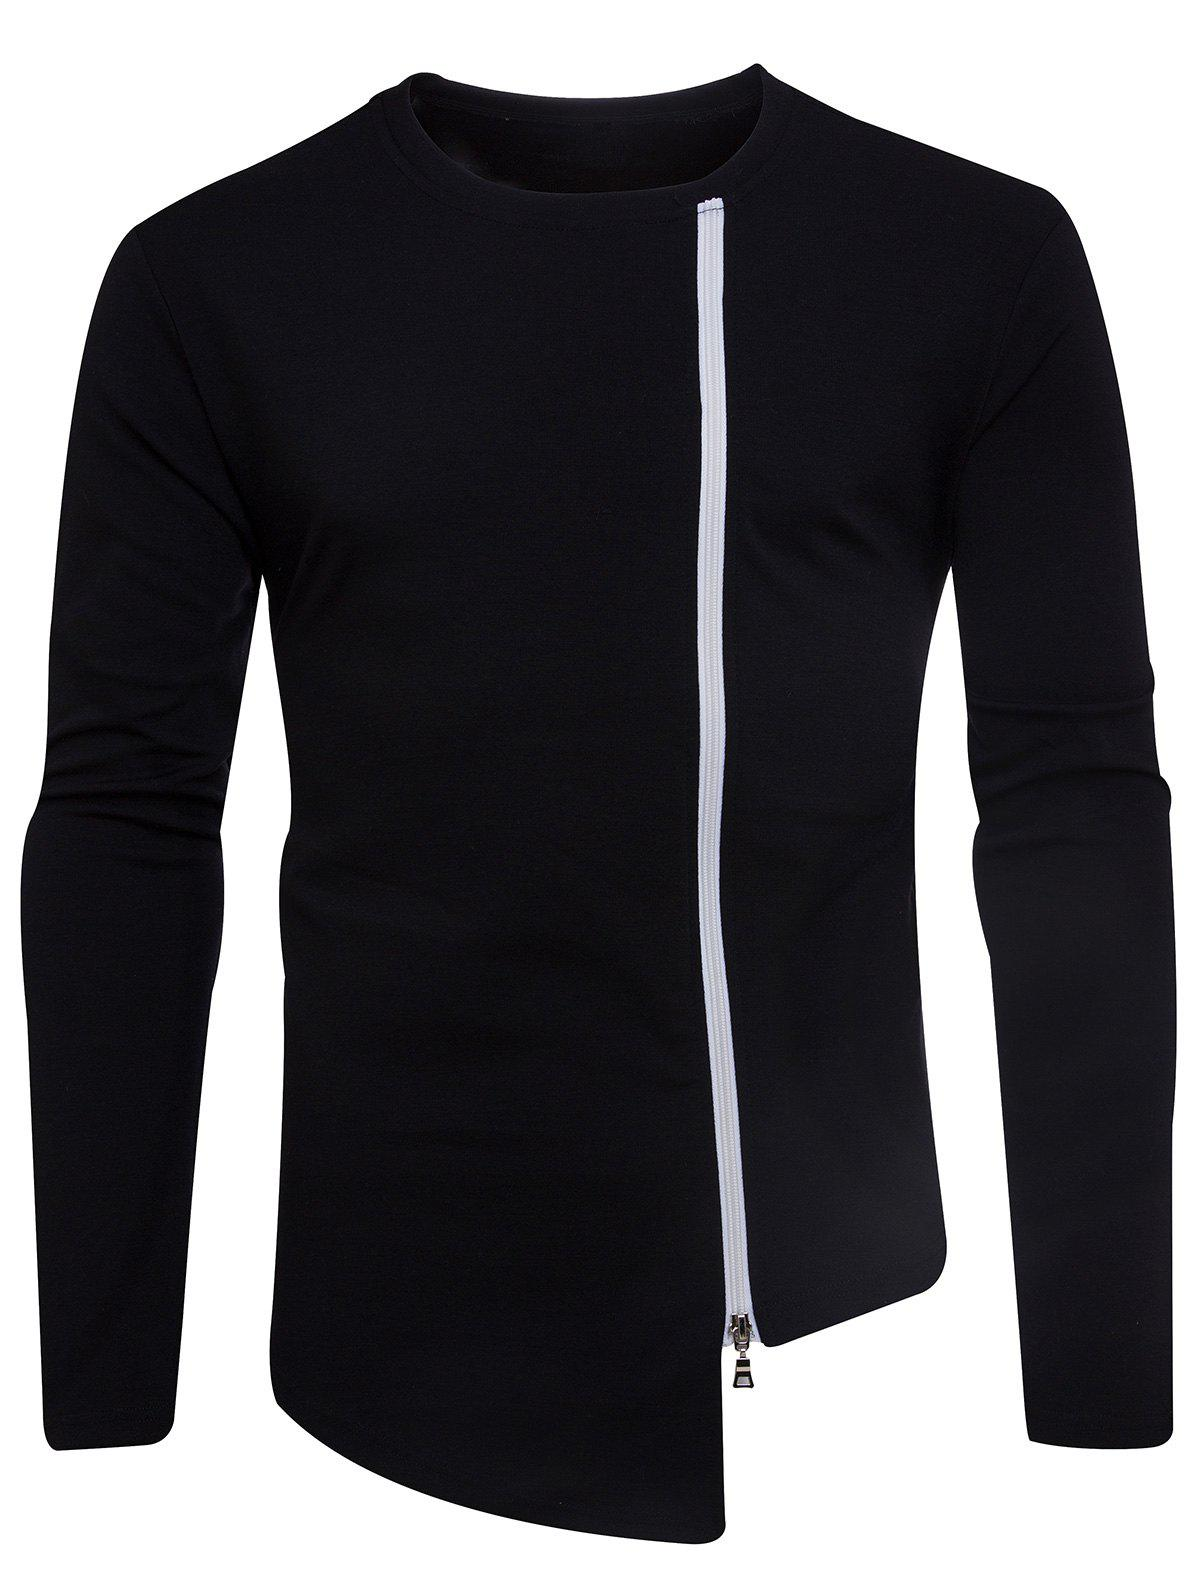 Long Sleeve Oblique Zip Up Asymmetric T-shirt - BLACK S